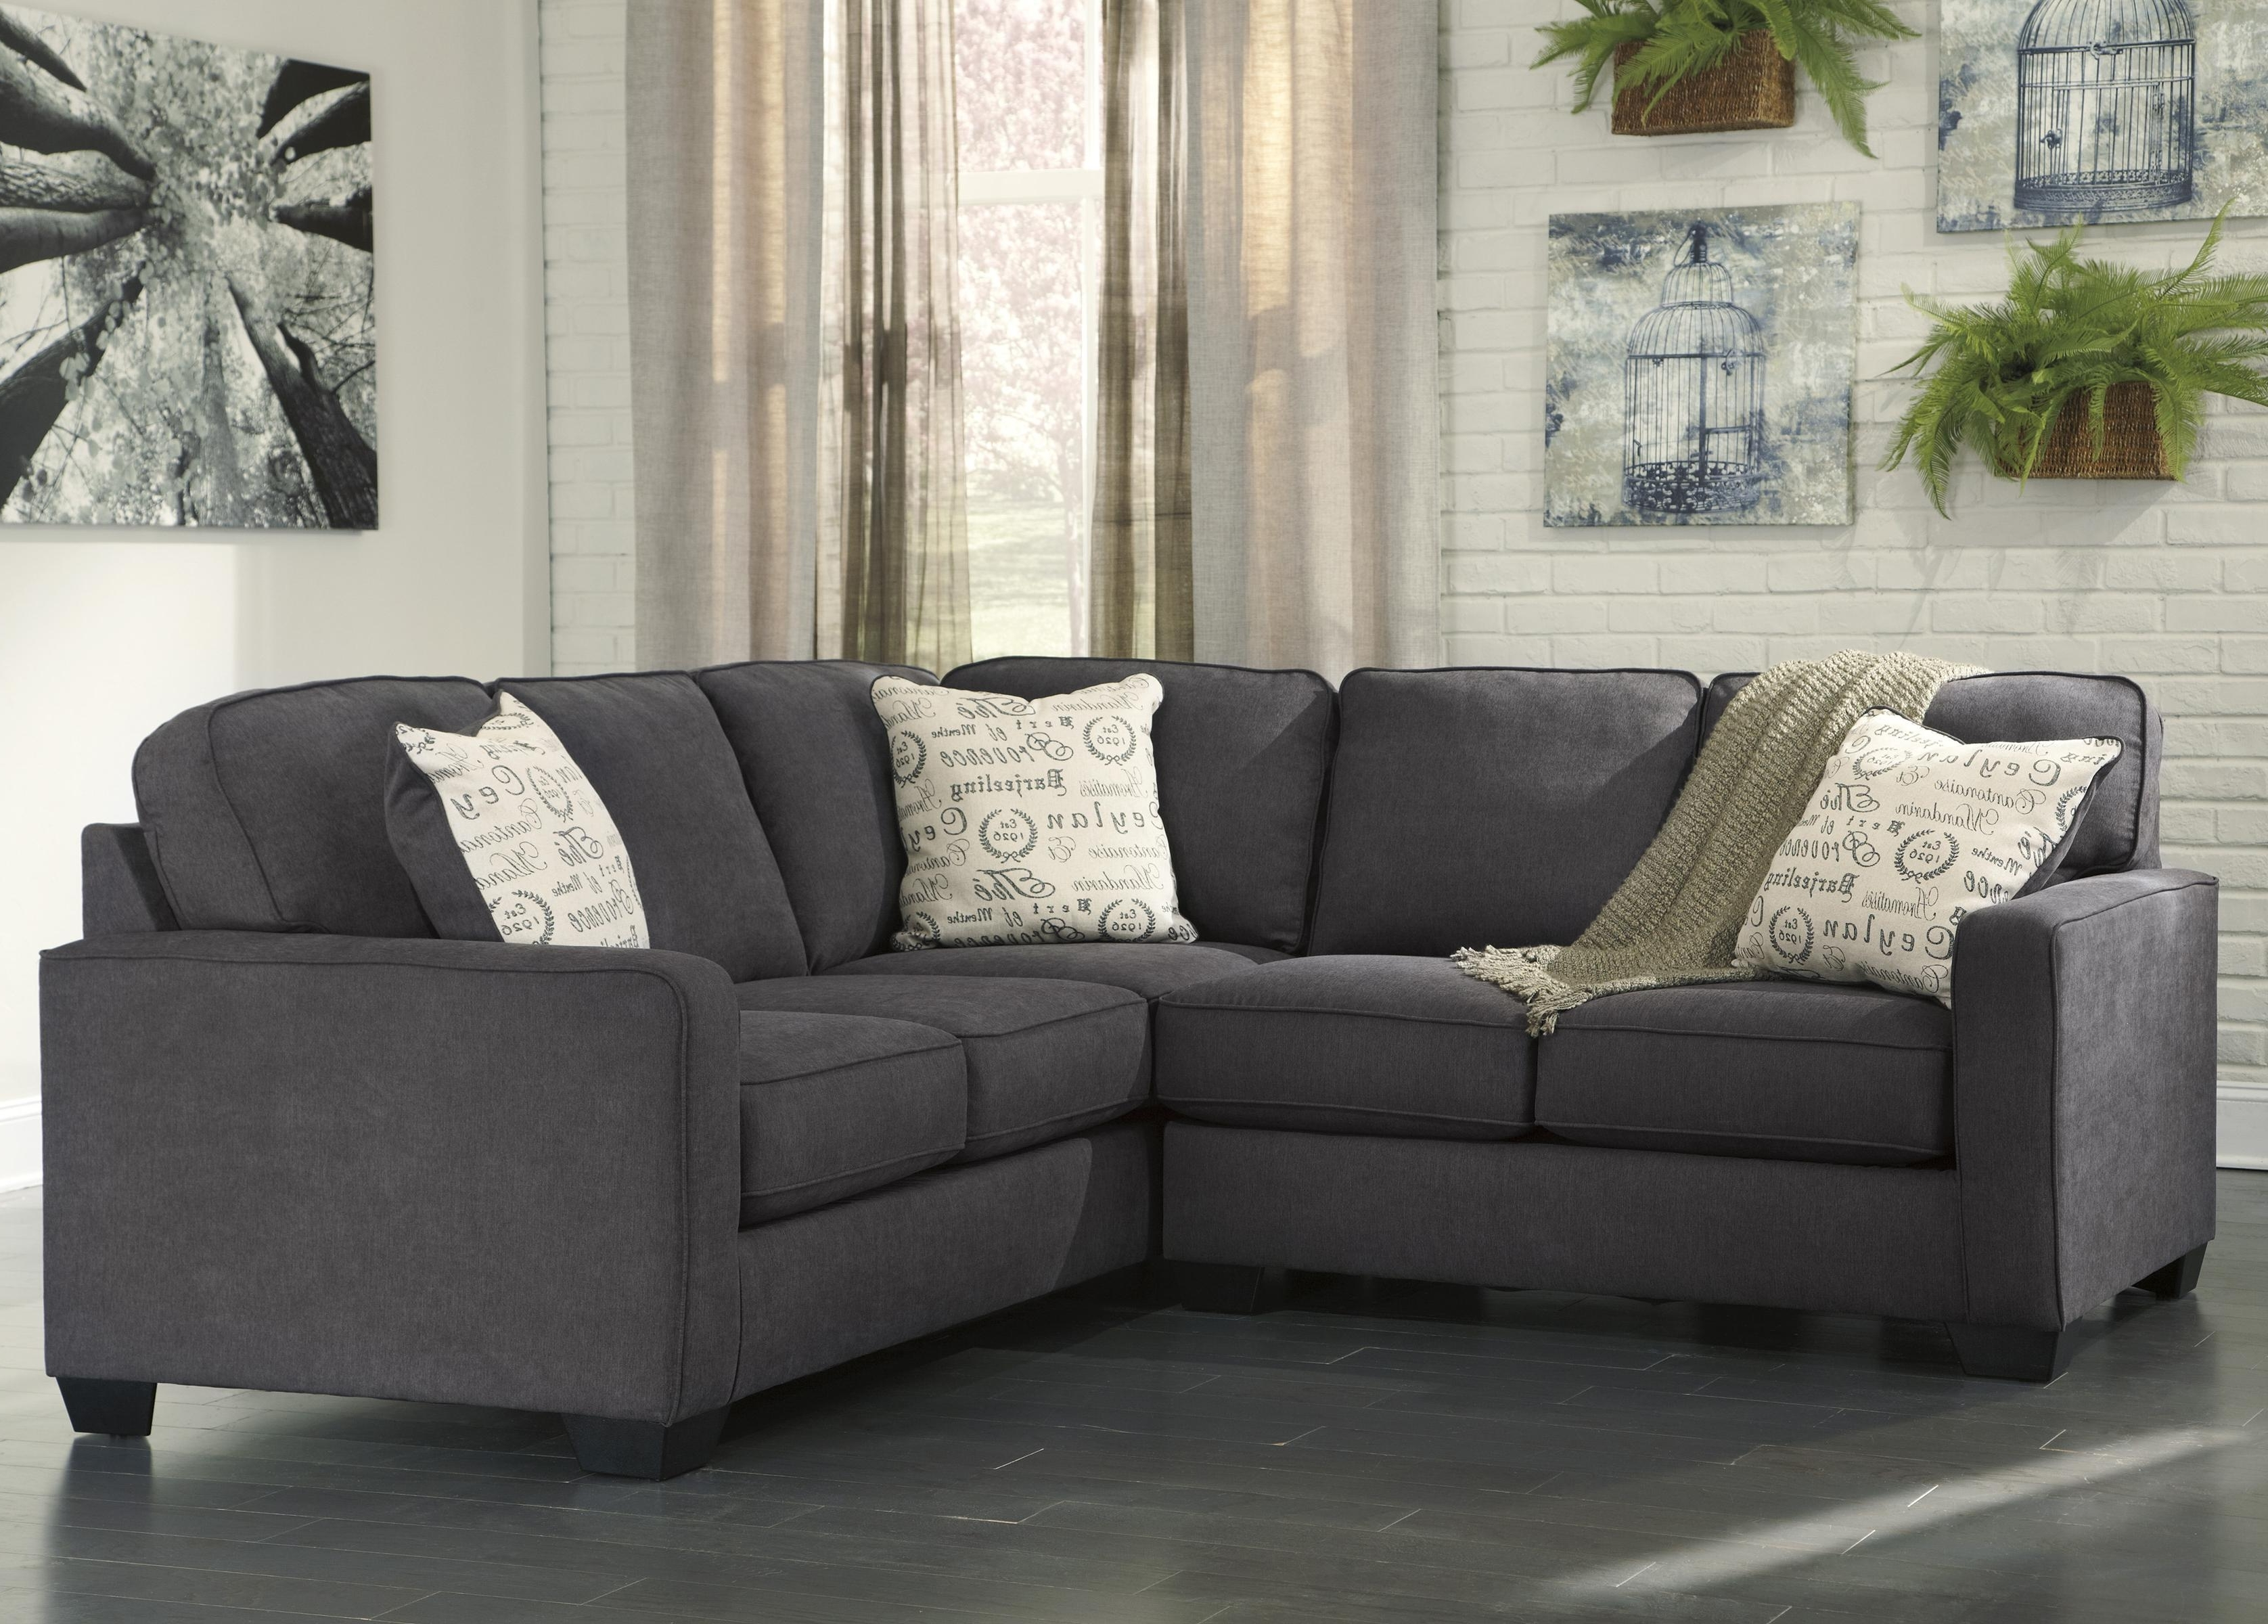 East Bay Sectional Sofas Regarding Most Popular Signature Designashley Alenya – Charcoal 2 Piece Sectional (Gallery 1 of 20)